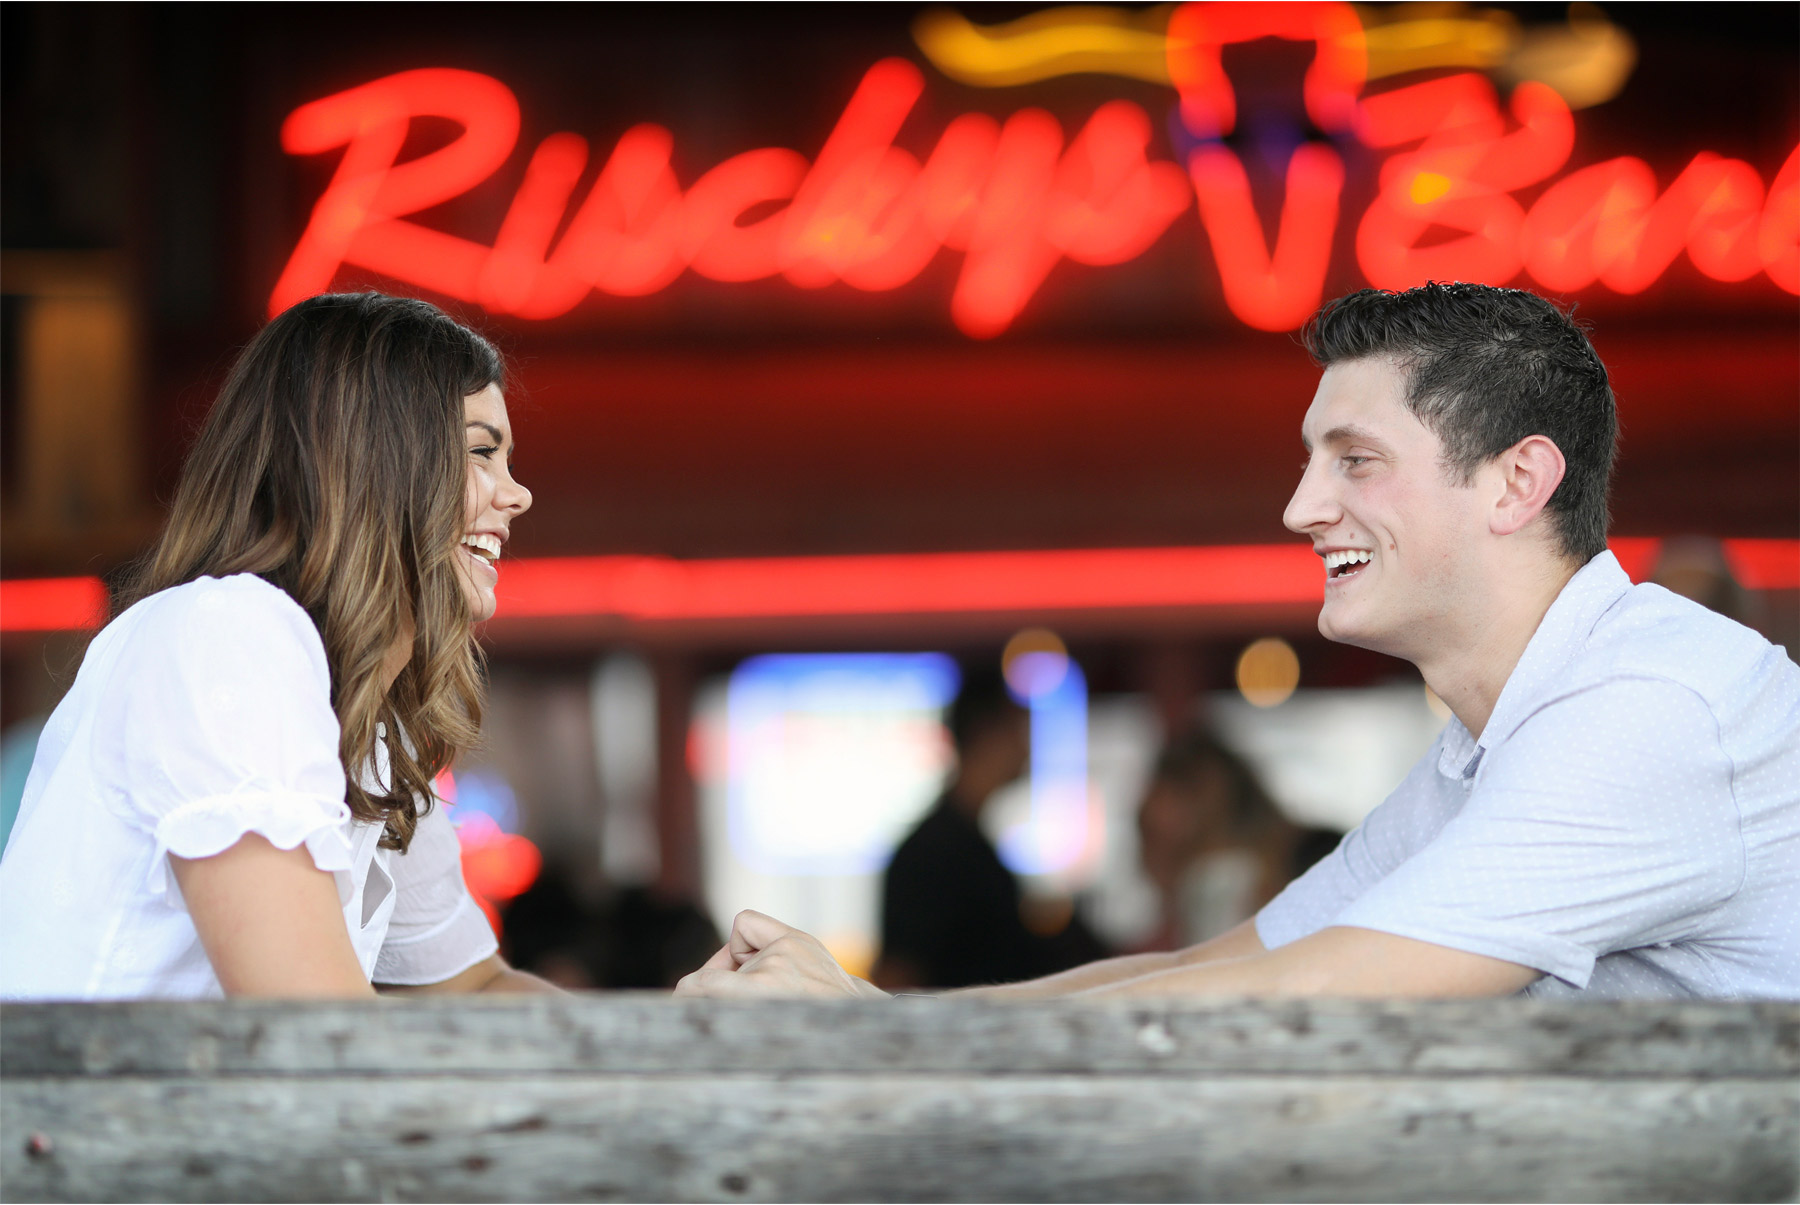 08-Fly-to-Me-Destination-Engagement-Session-Vick-Photography-Fort-Worth-Texas-Couple-BBQ-Maggie-and-Matt.jpg